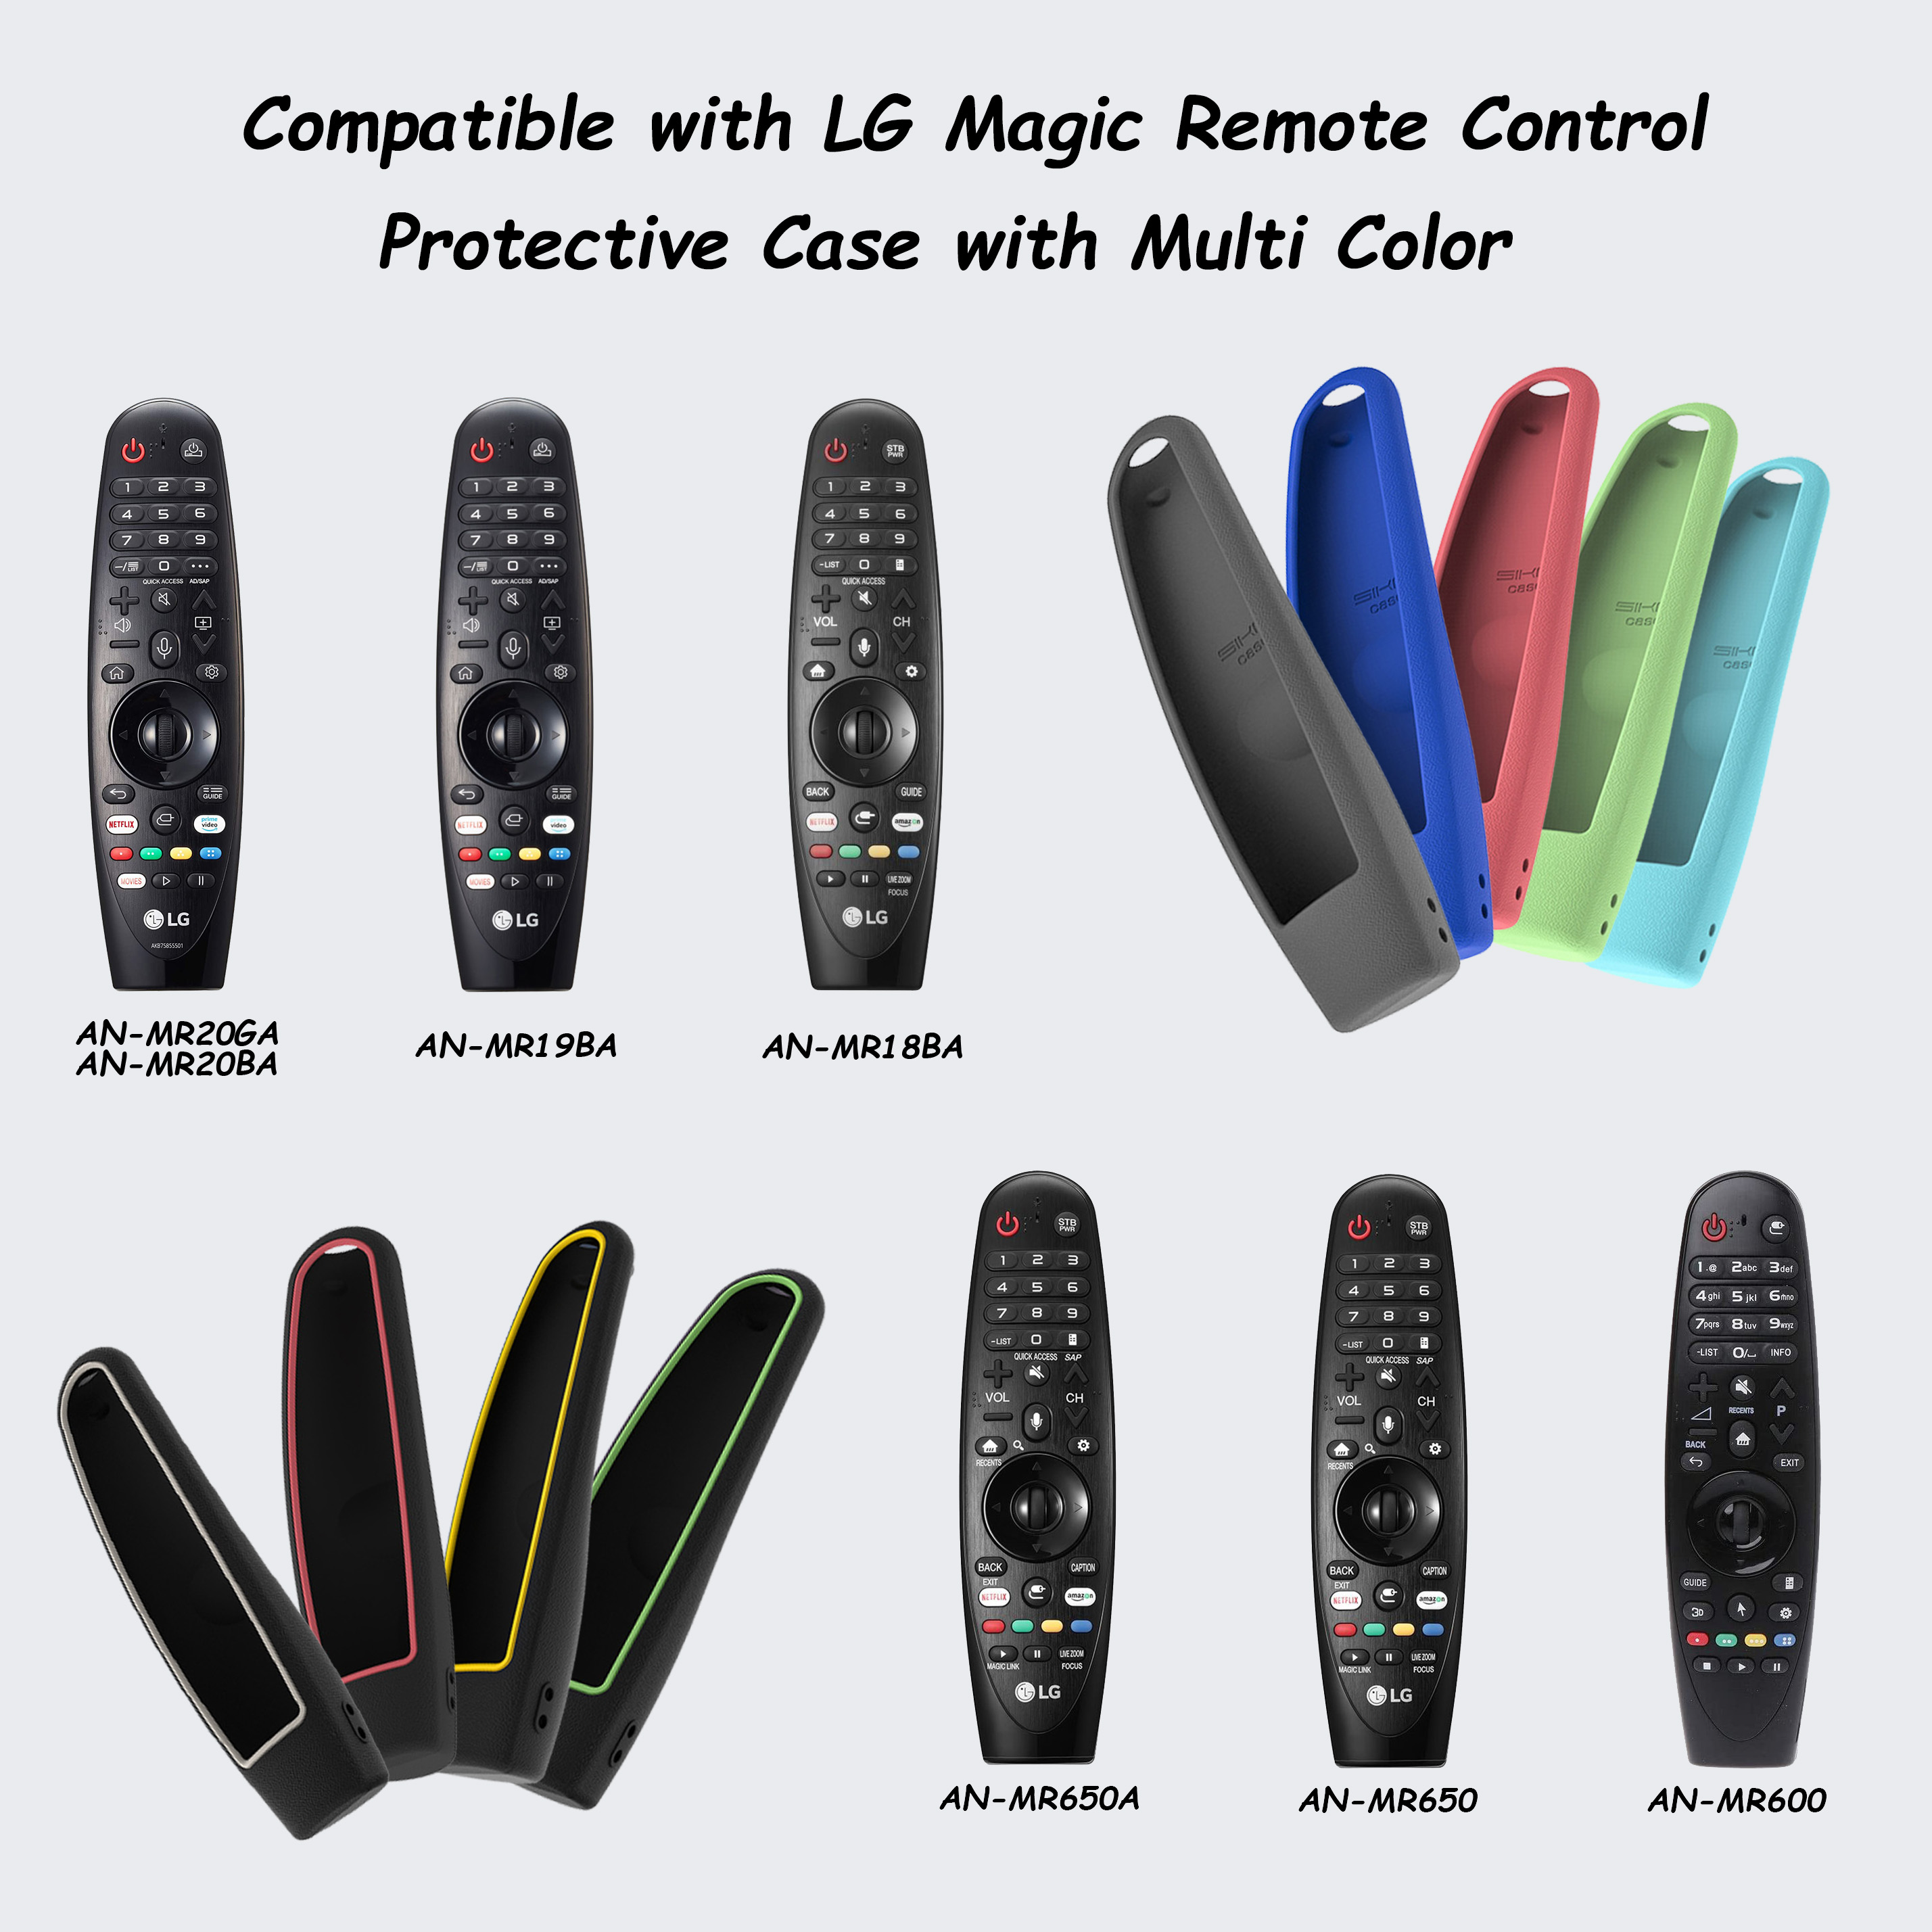 For LG AN-MR600 AN-MR650 AN-MR18BA MR19BA MR20GA Magic Remote Control Cases SIKAI Protective Silicone Covers Shockproof 3